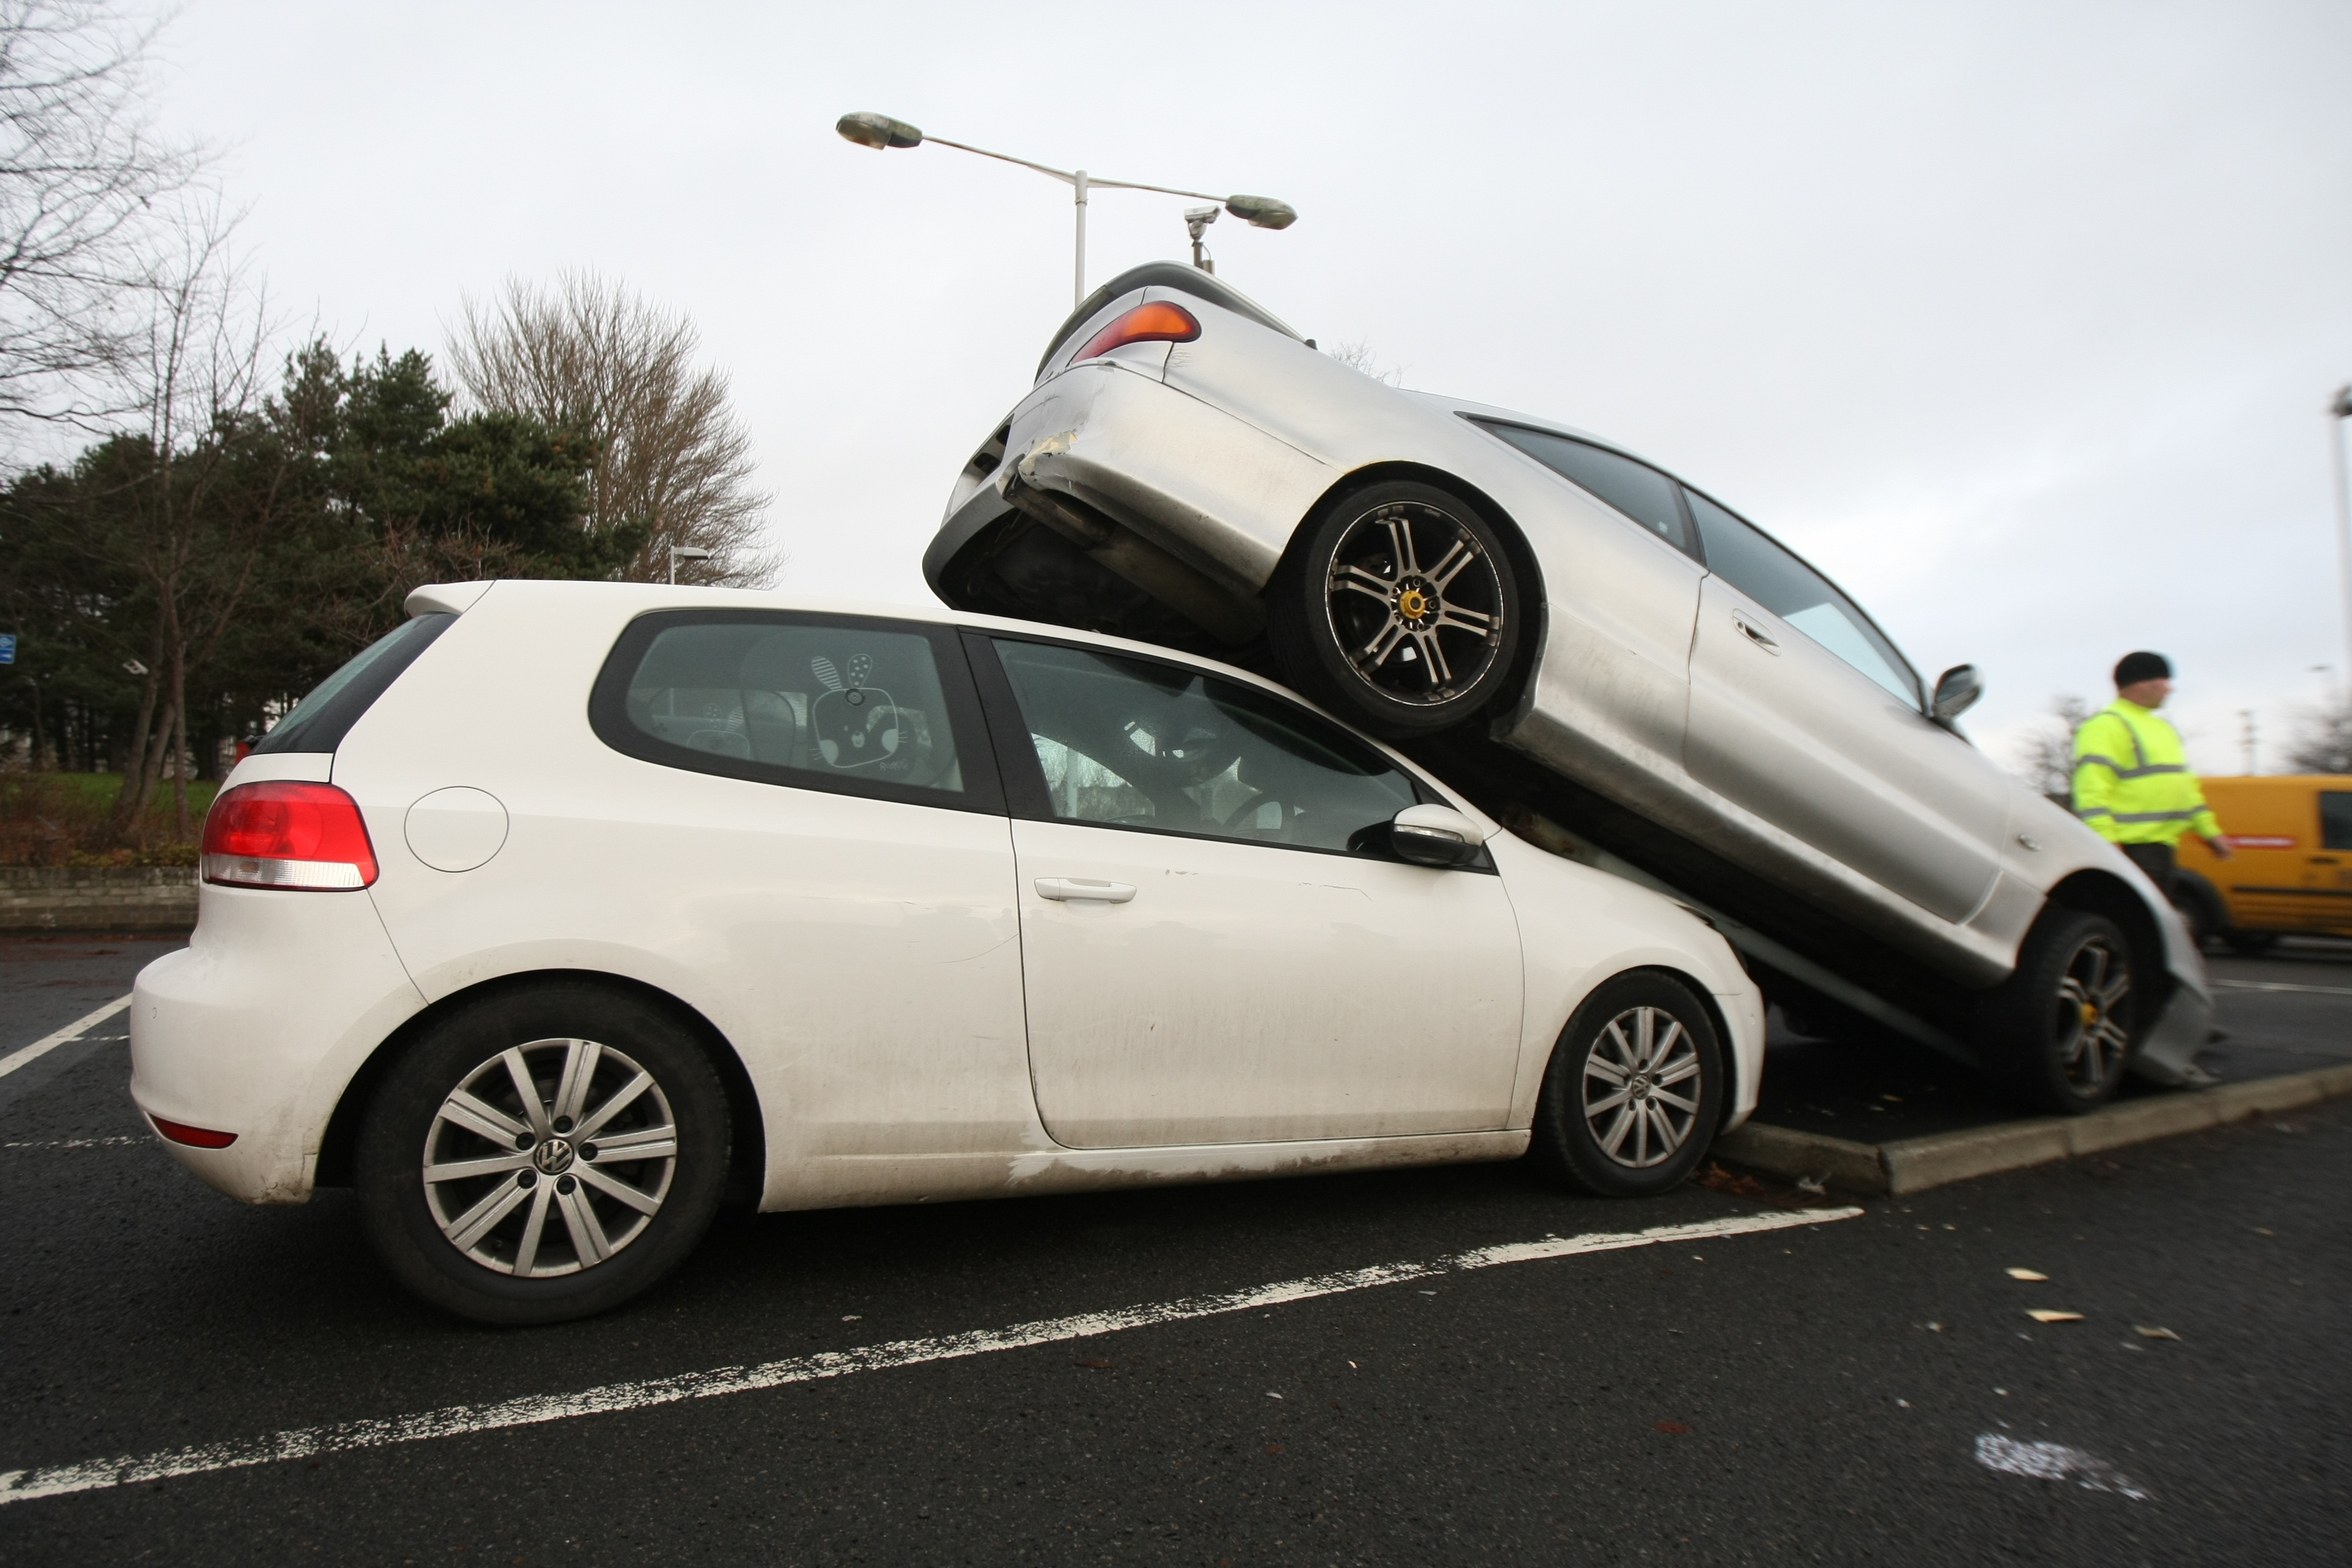 The car pile-up at Kirkcaldy rail station.